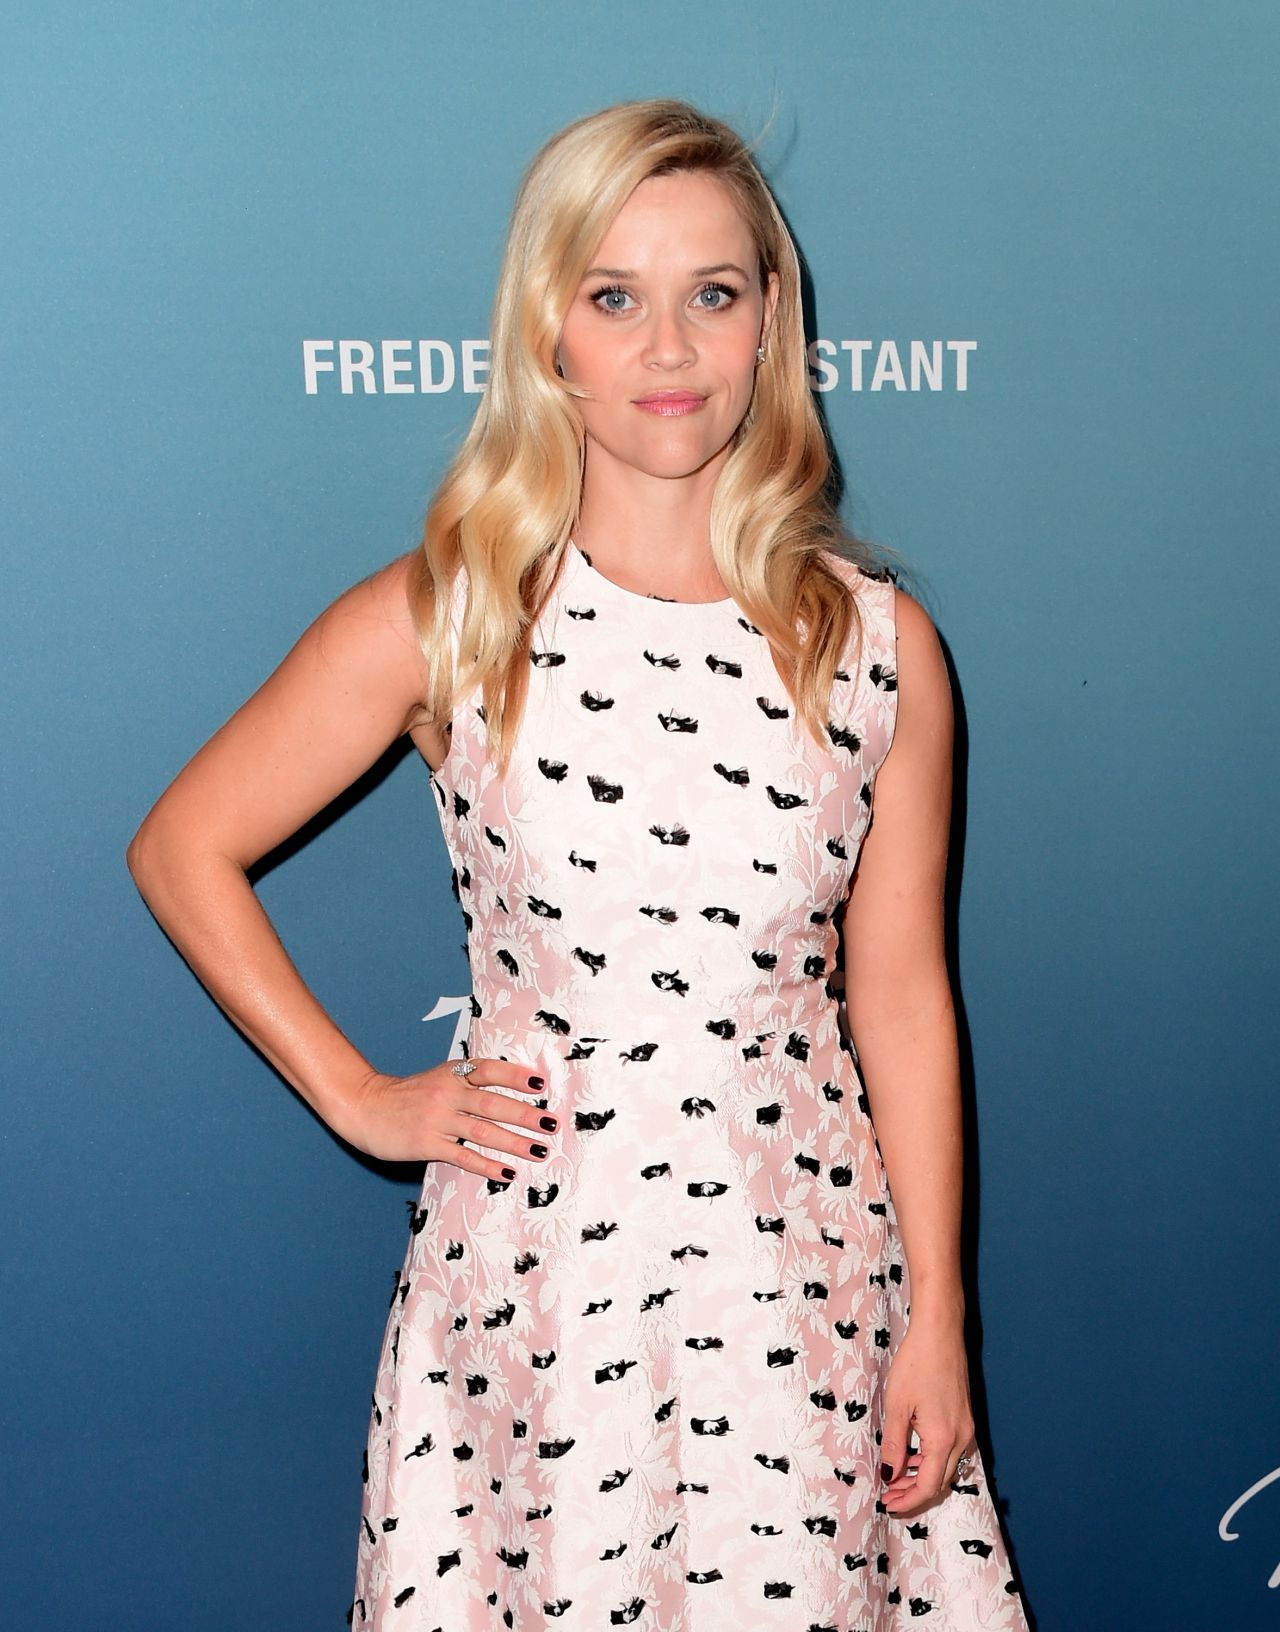 reese-witherspoon-variety-s-power-of-women-luncheon-in-beverly-hills-october-2015_13